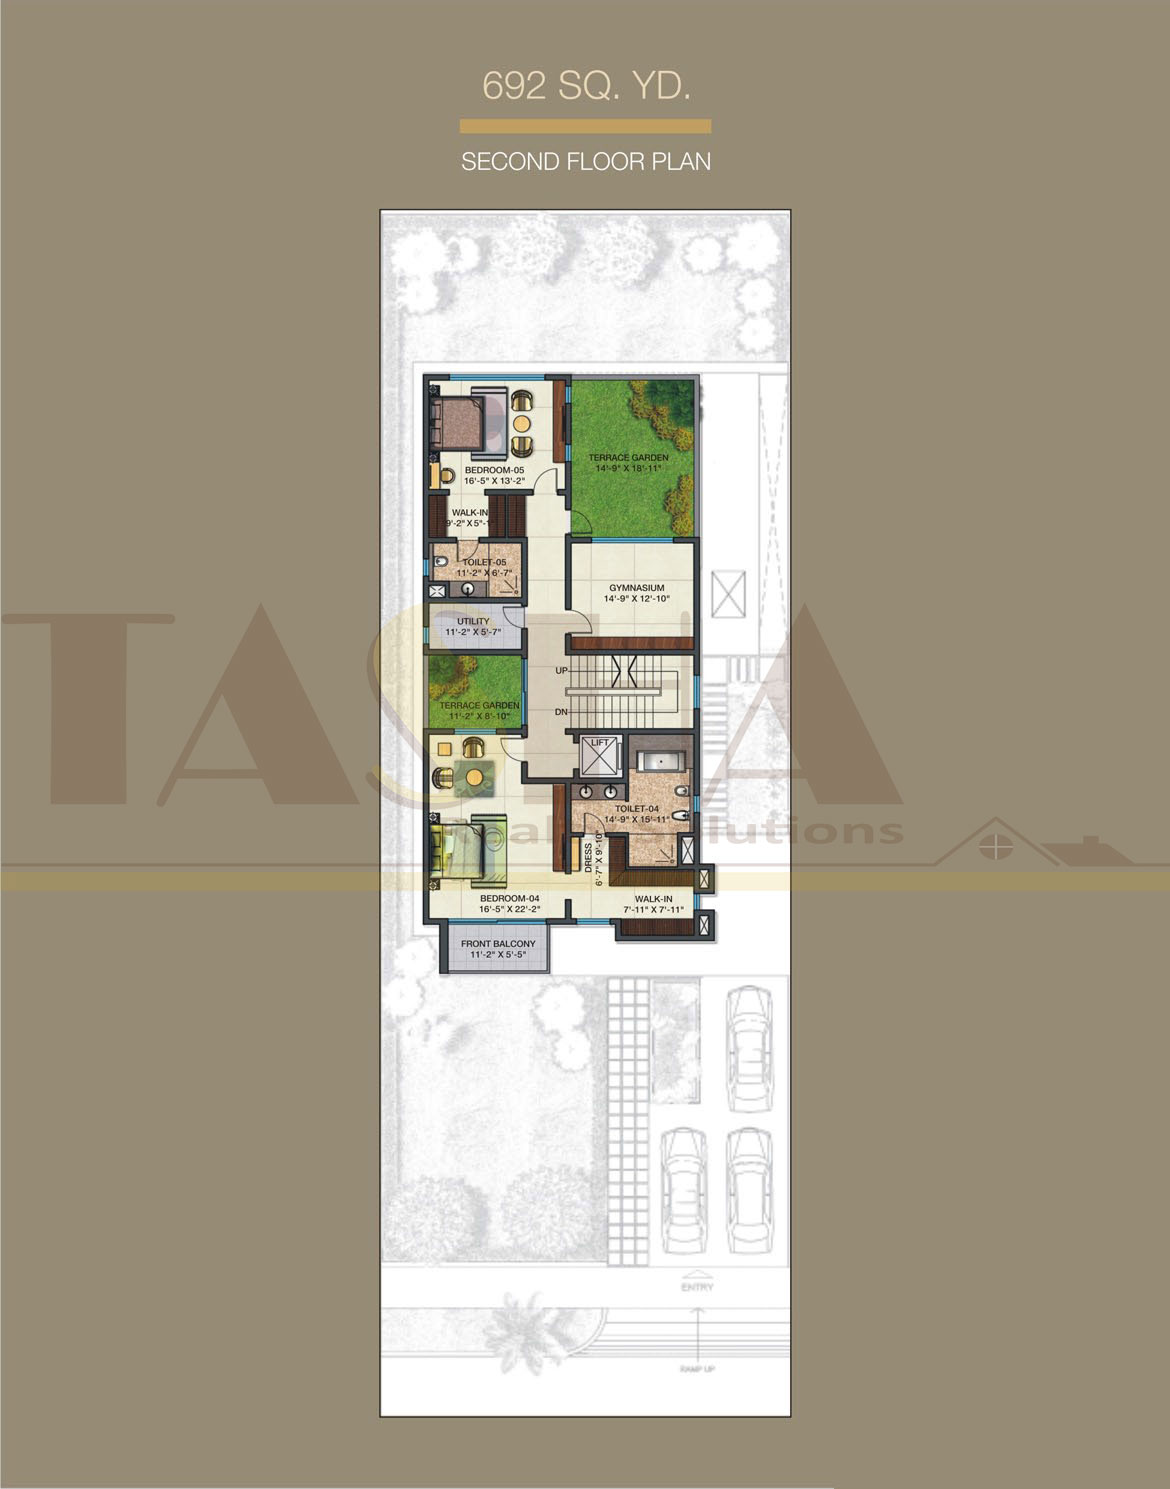 Sobha International City Dwarka Expressway FLOOR PLAN